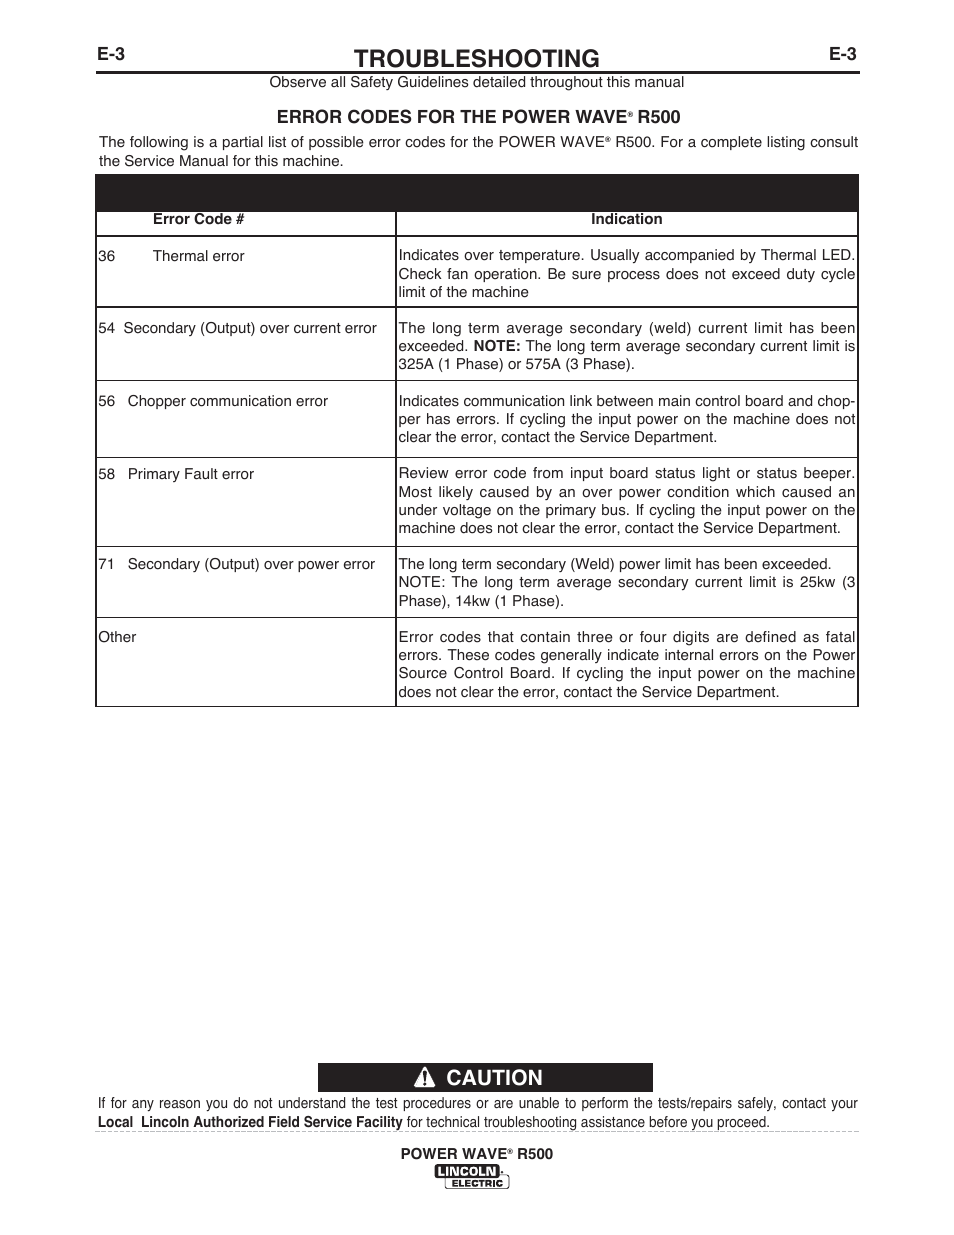 Troubleshooting Caution Main Control Board Status Light Related Image With Current Electricity Notes Lincoln Electric Im10133 Power Wave R500 User Manual Page 29 56